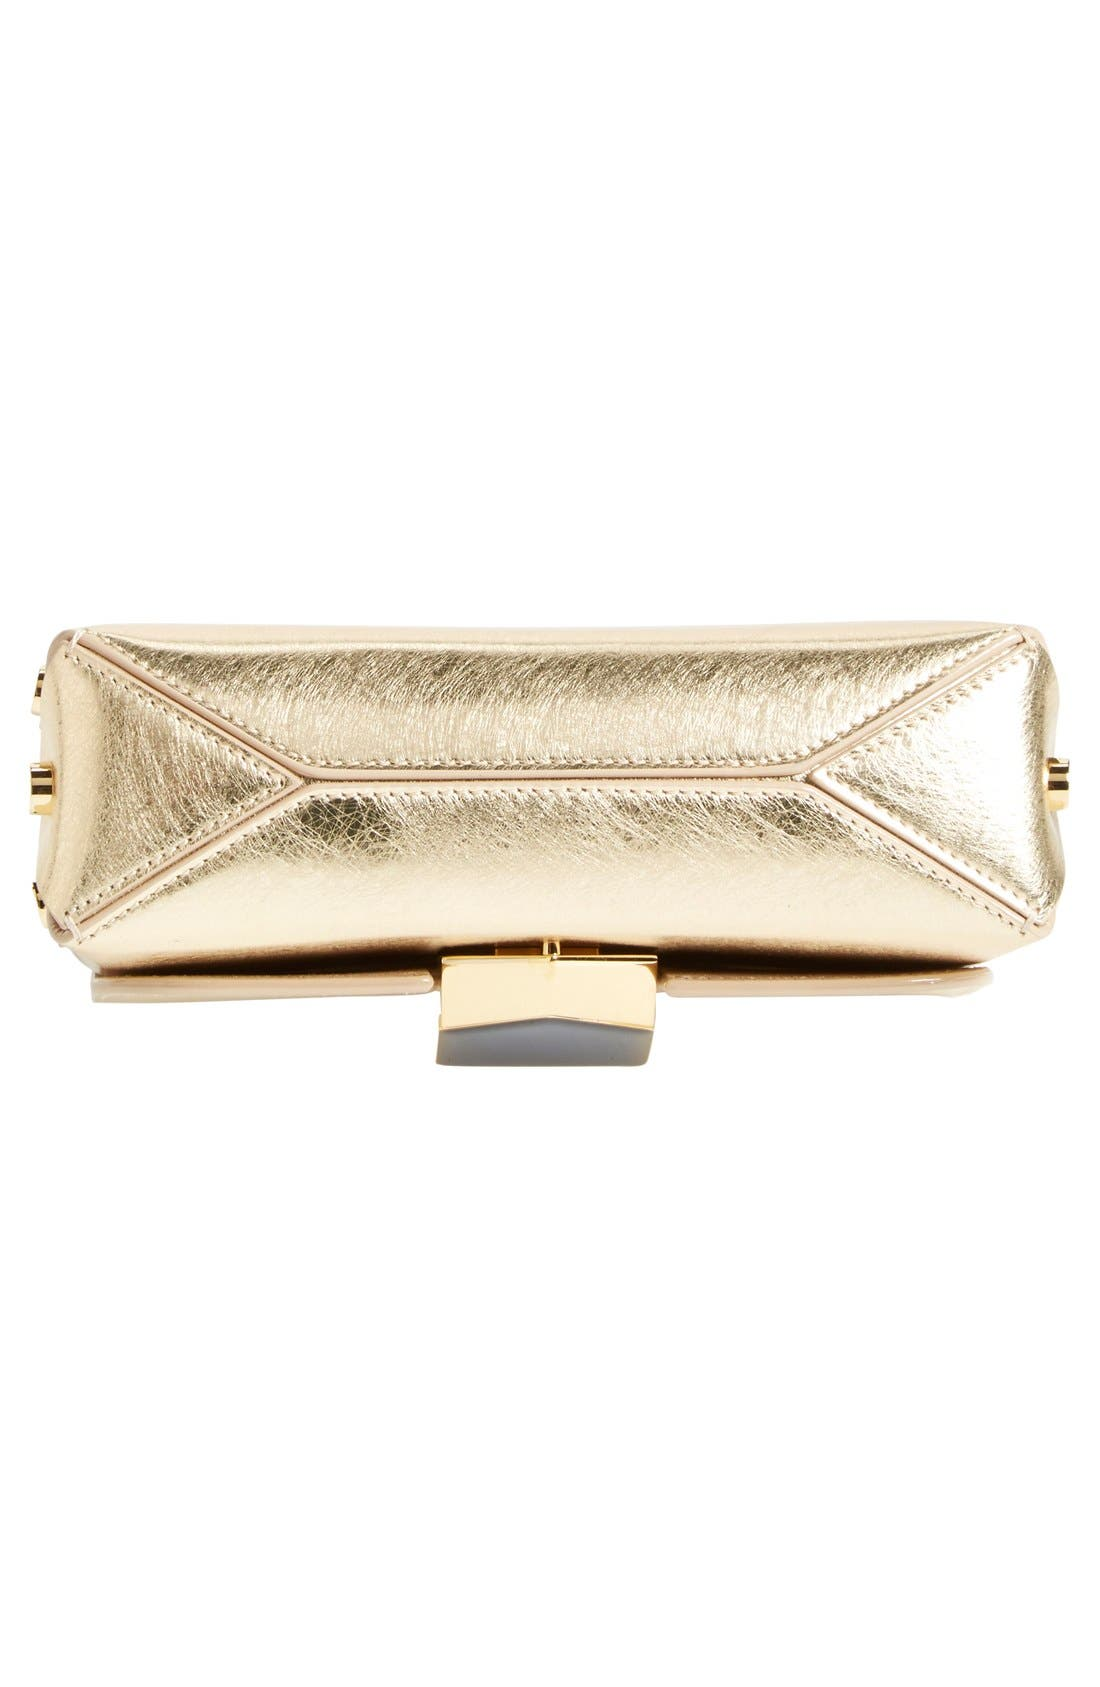 'Lockett Petite' Metallic Leather Shoulder Bag,                             Alternate thumbnail 3, color,                             710